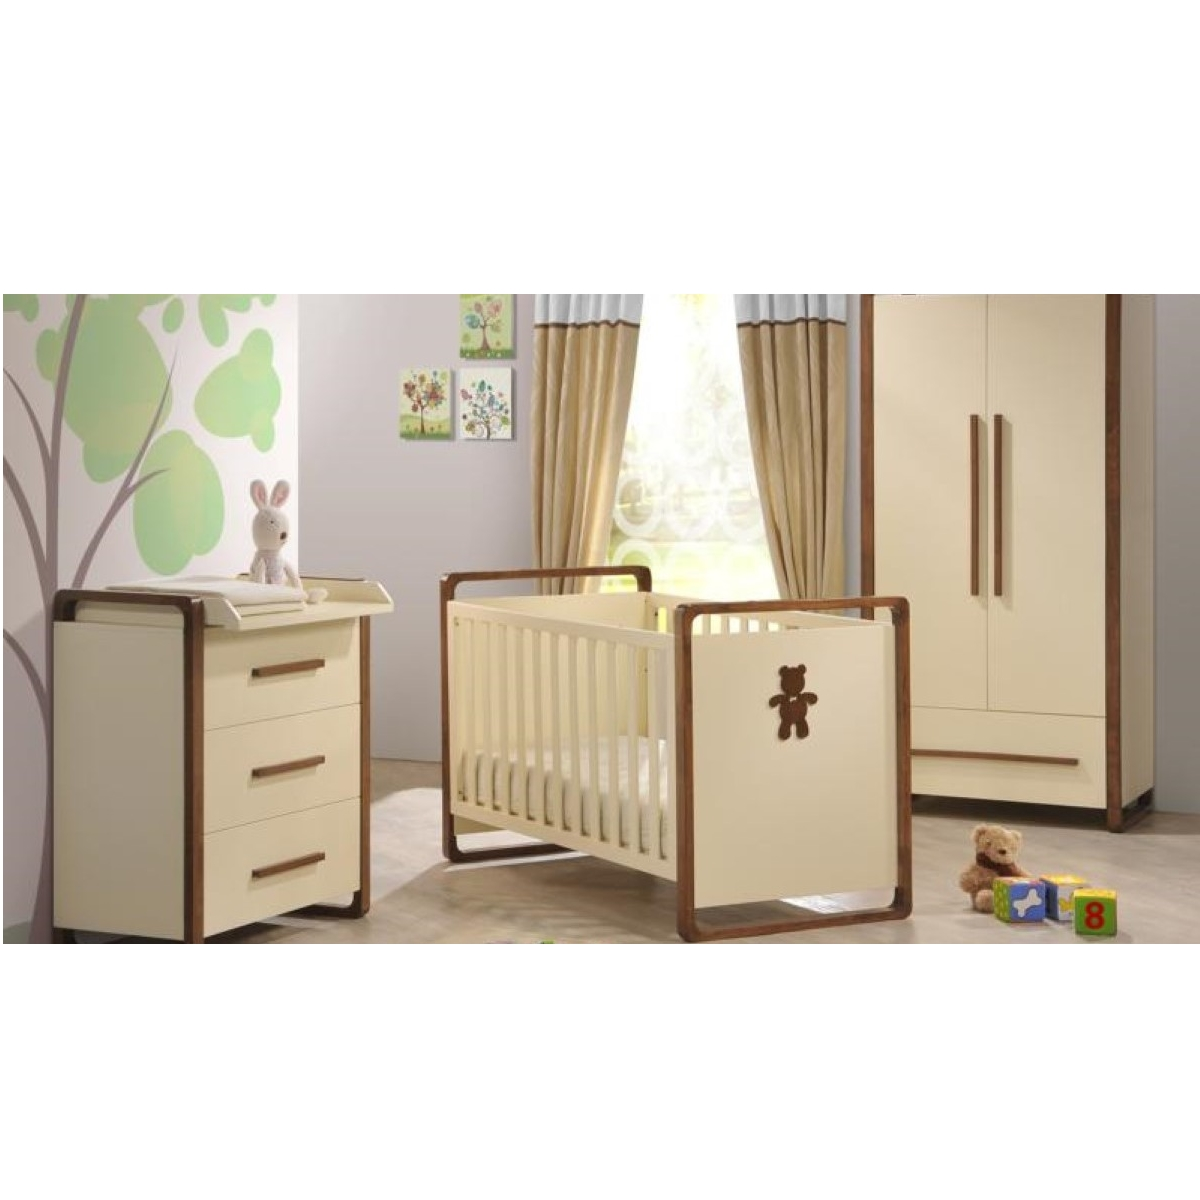 Baby Bed Room Set Crib With Wardrobe